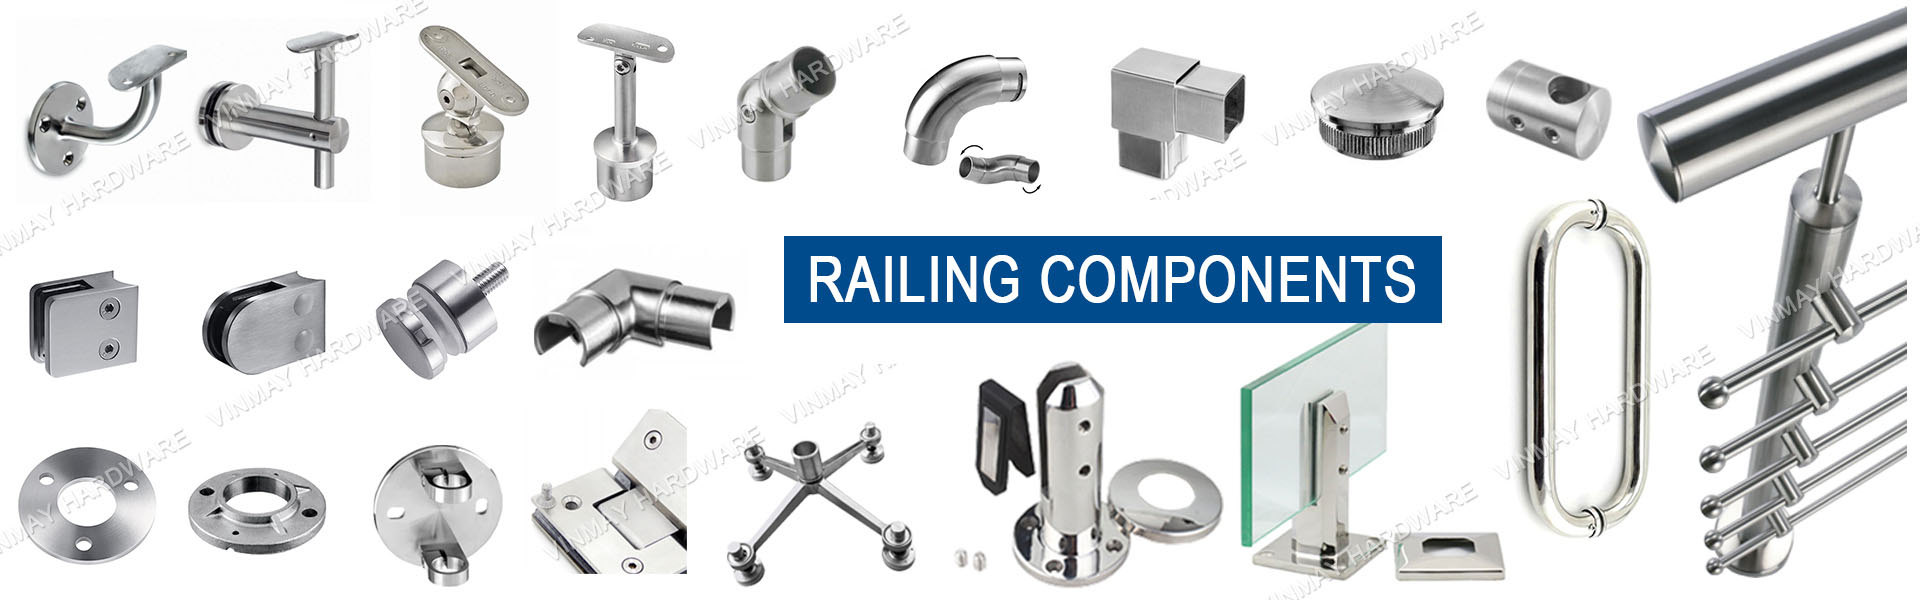 full range of stainless railing fittings